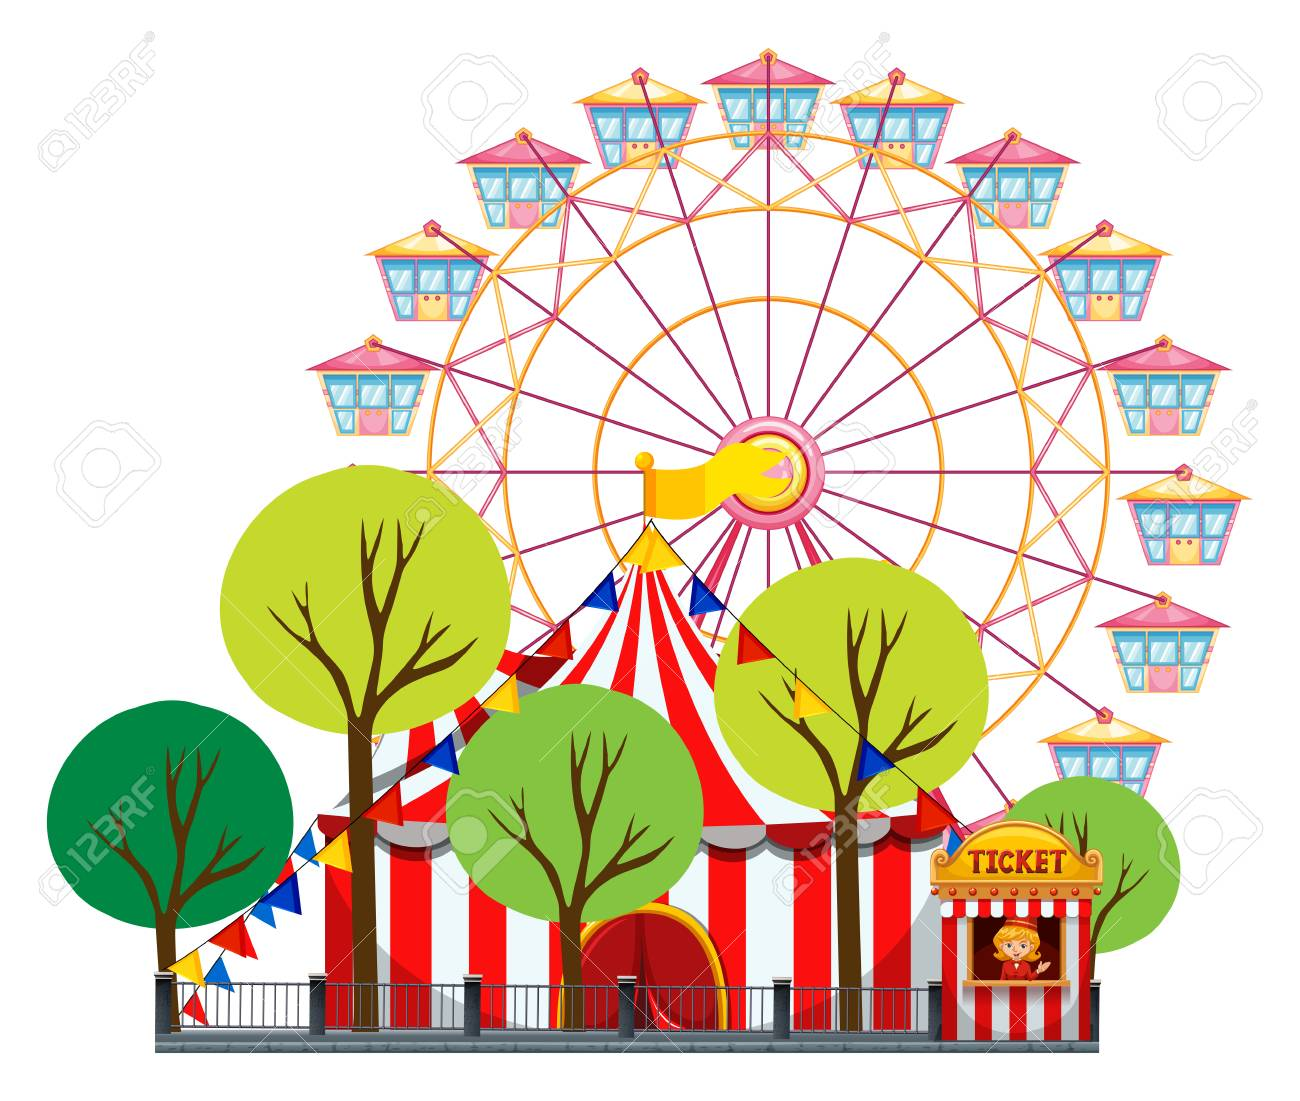 circus scene with tent and ferris wheel illustration royalty free rh 123rf com animated ferris wheel clipart animated ferris wheel clipart